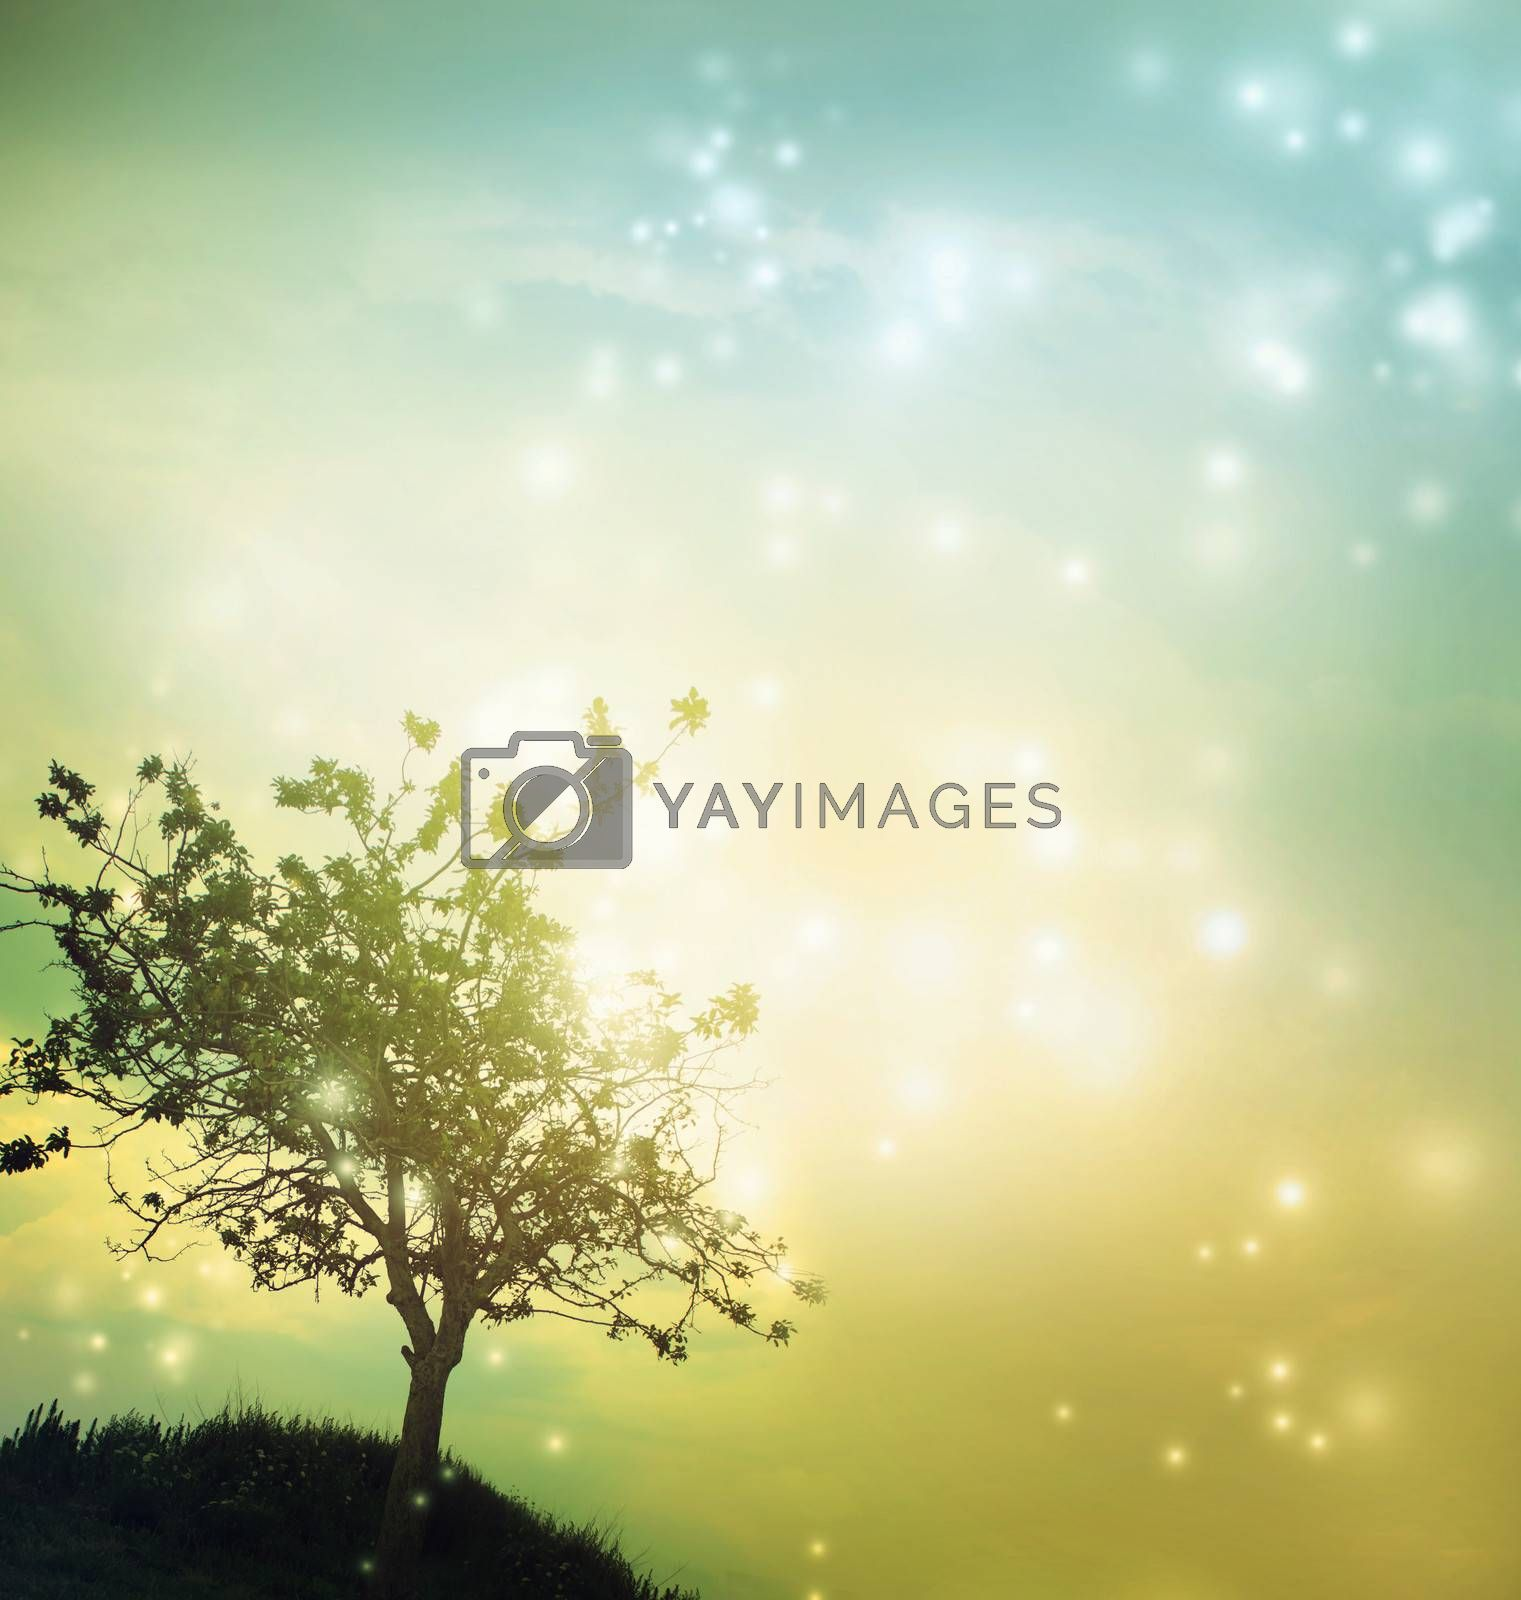 Royalty free image of Tree silhouette at twilight by melpomene